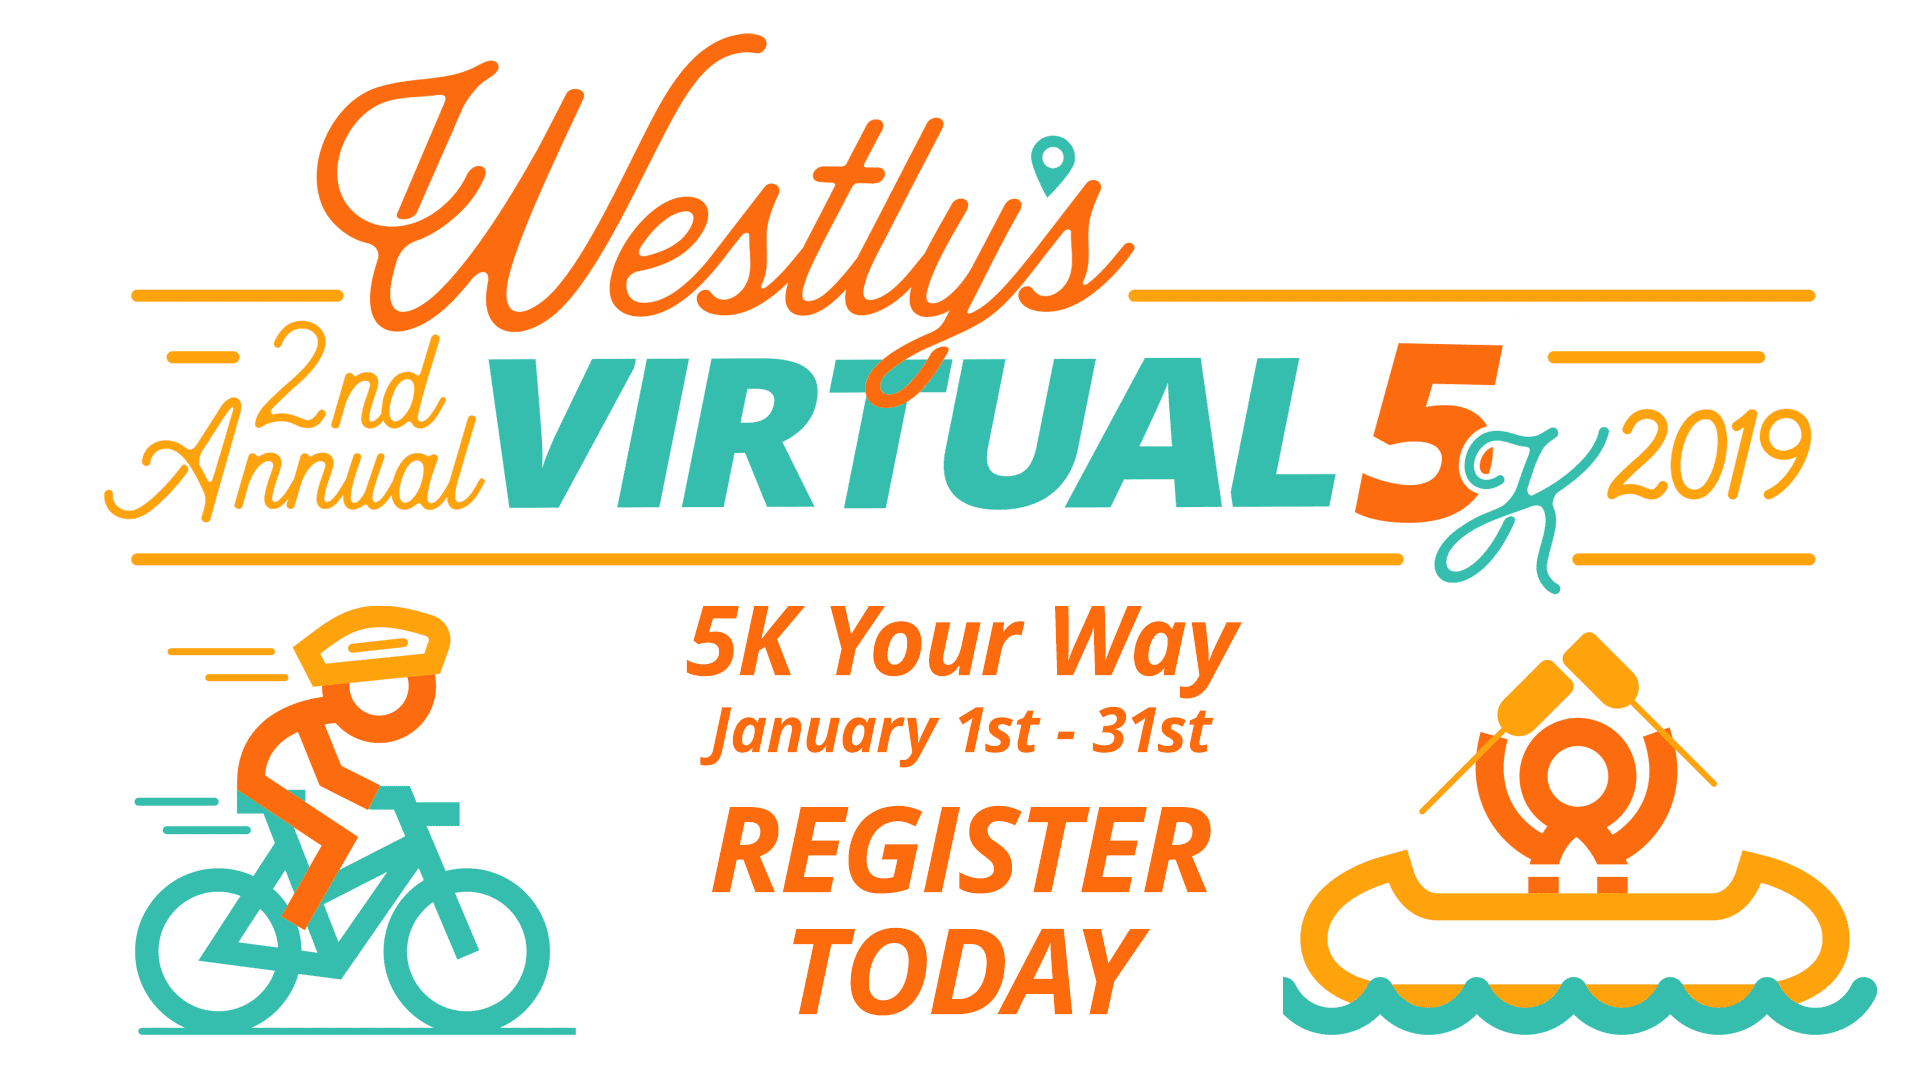 Westly's 2nd Annual Virtual 5K